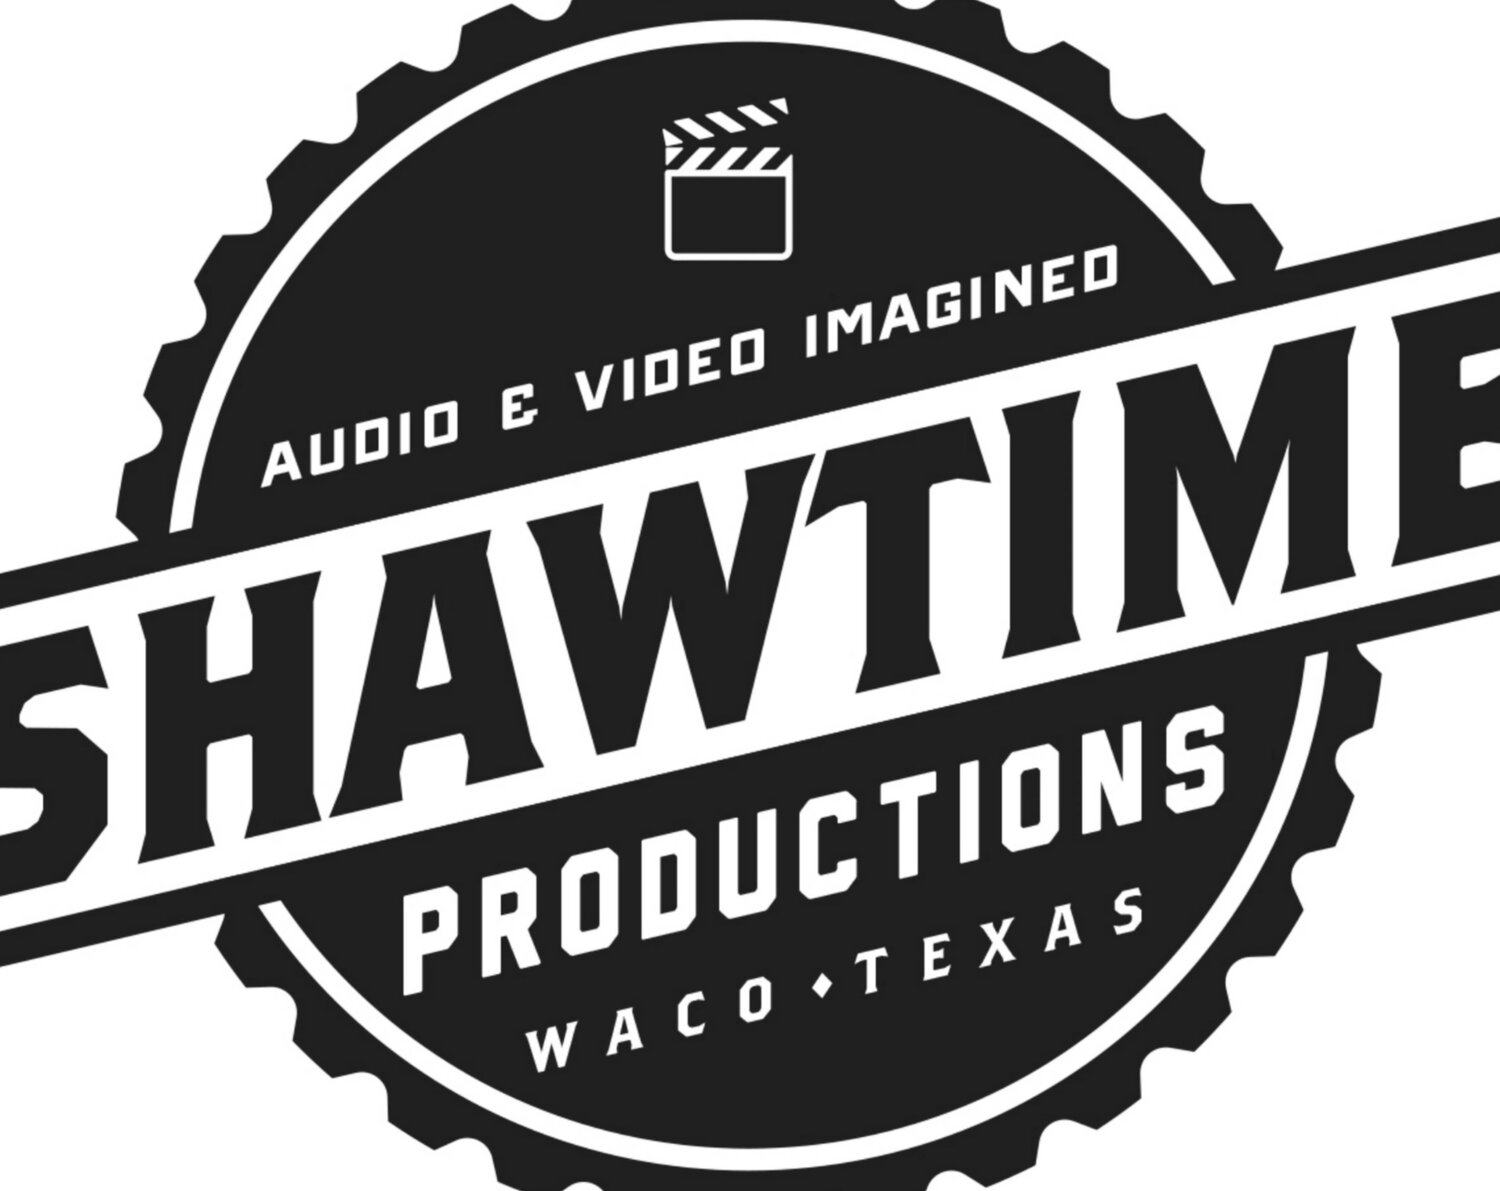 Shawtime Productions